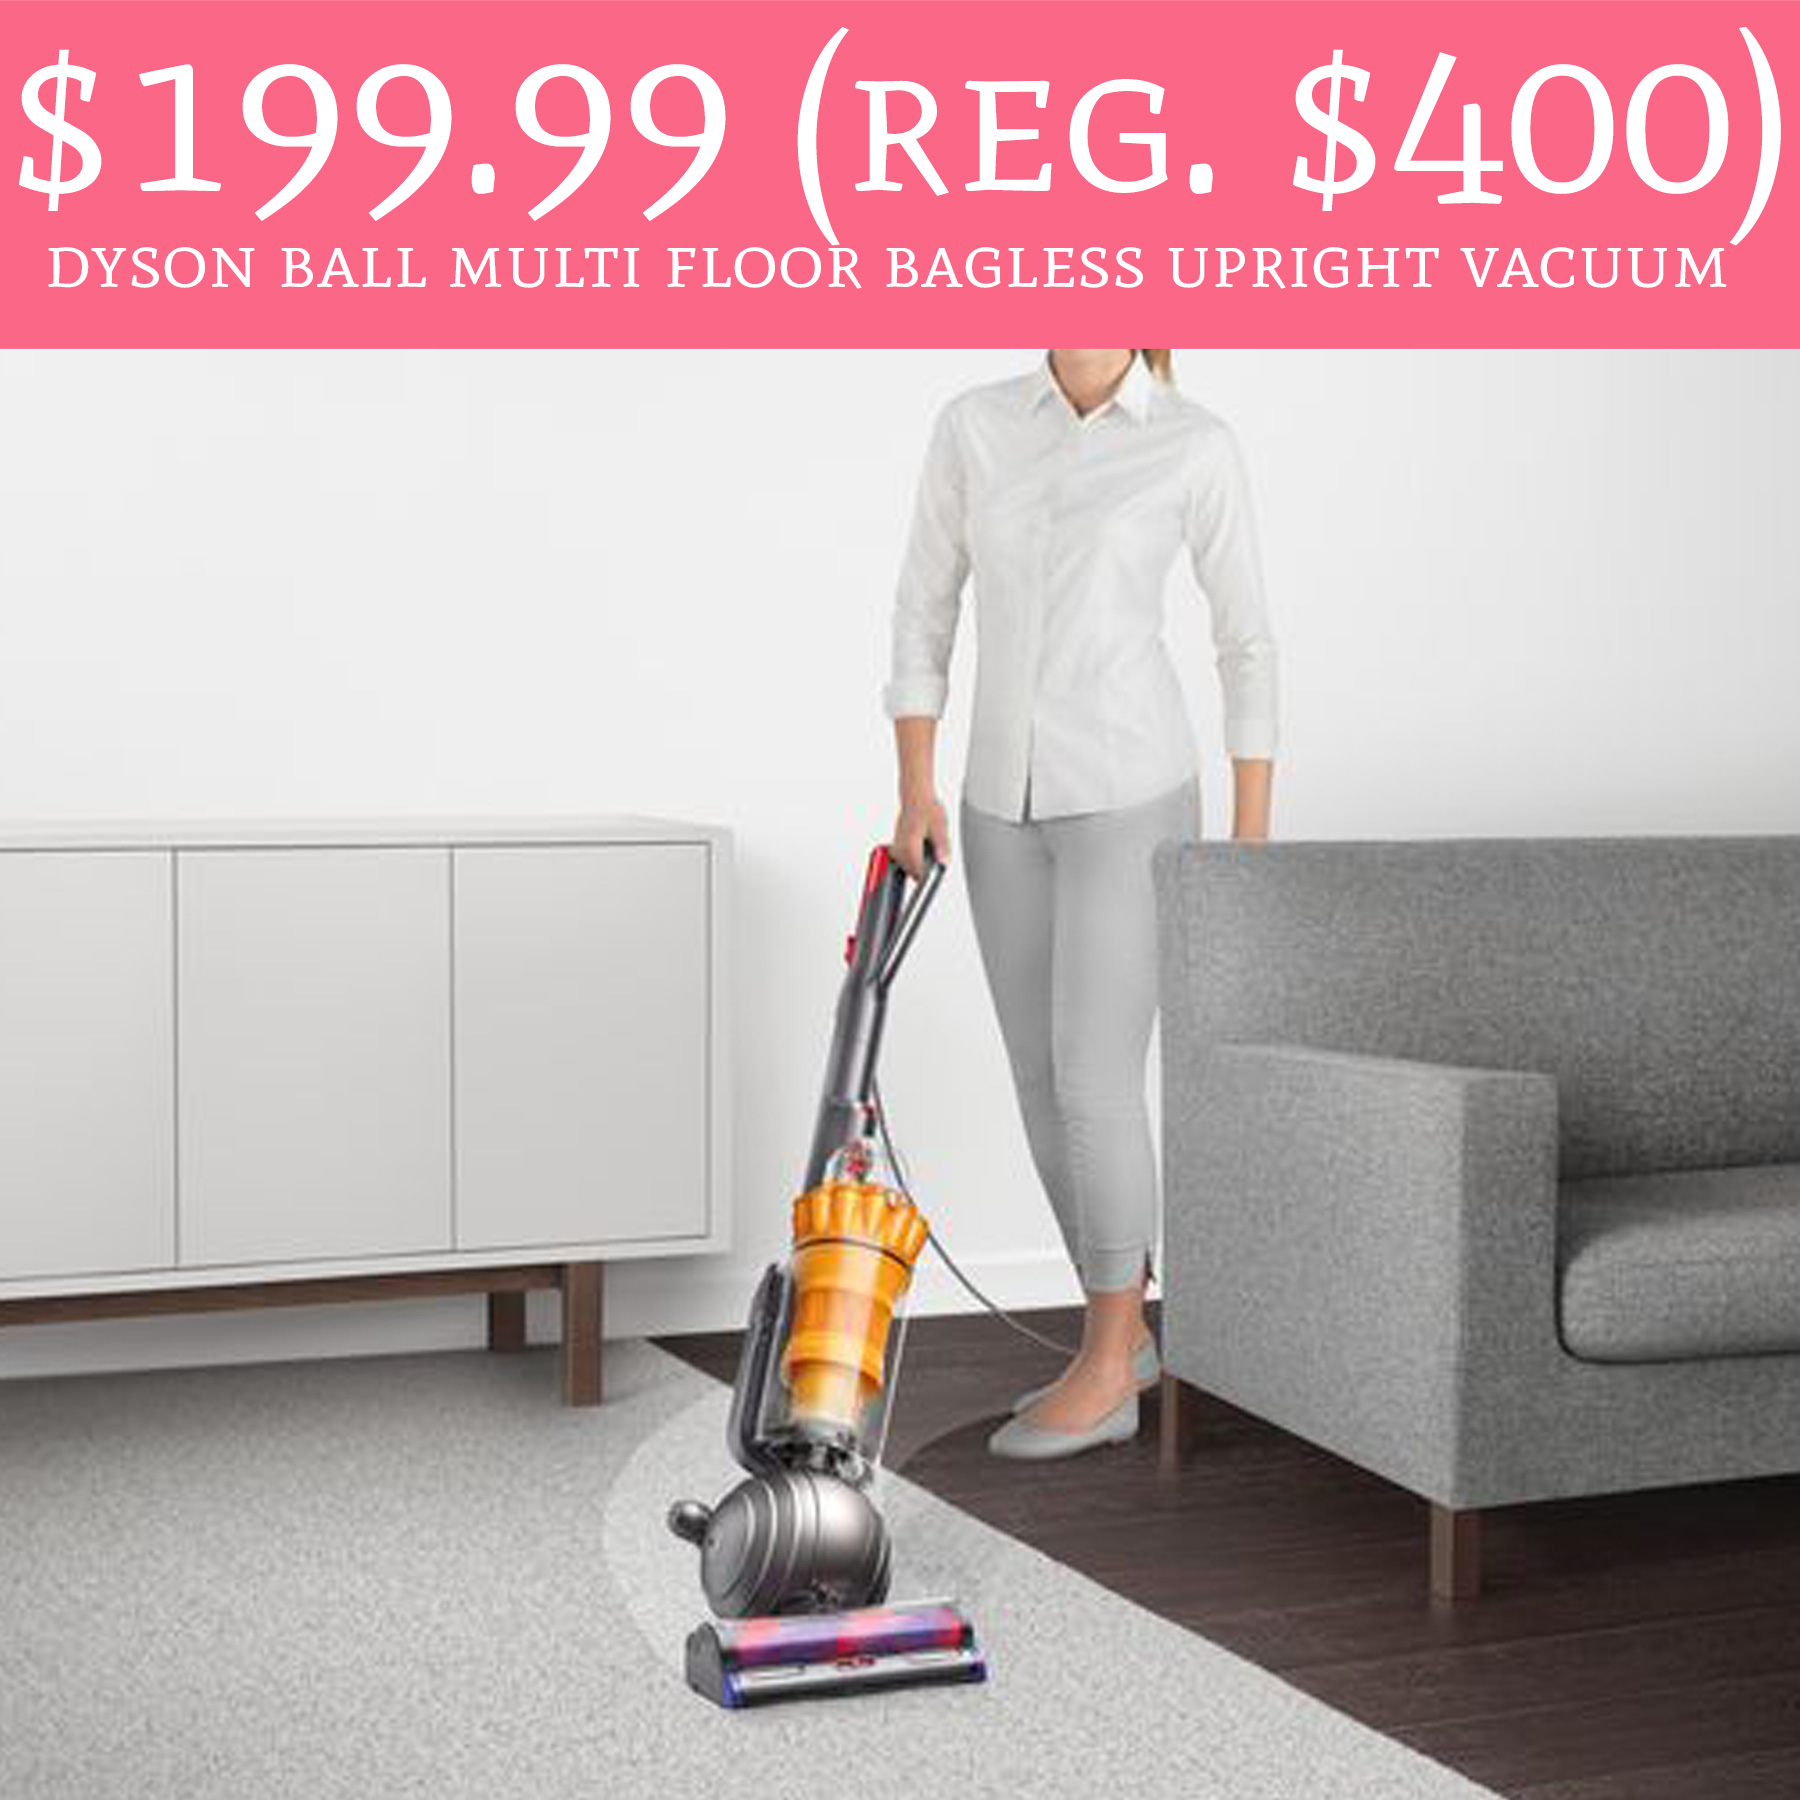 vacuum dyson briscoes floors floor products cleaner multi collections multifloor ball yellow